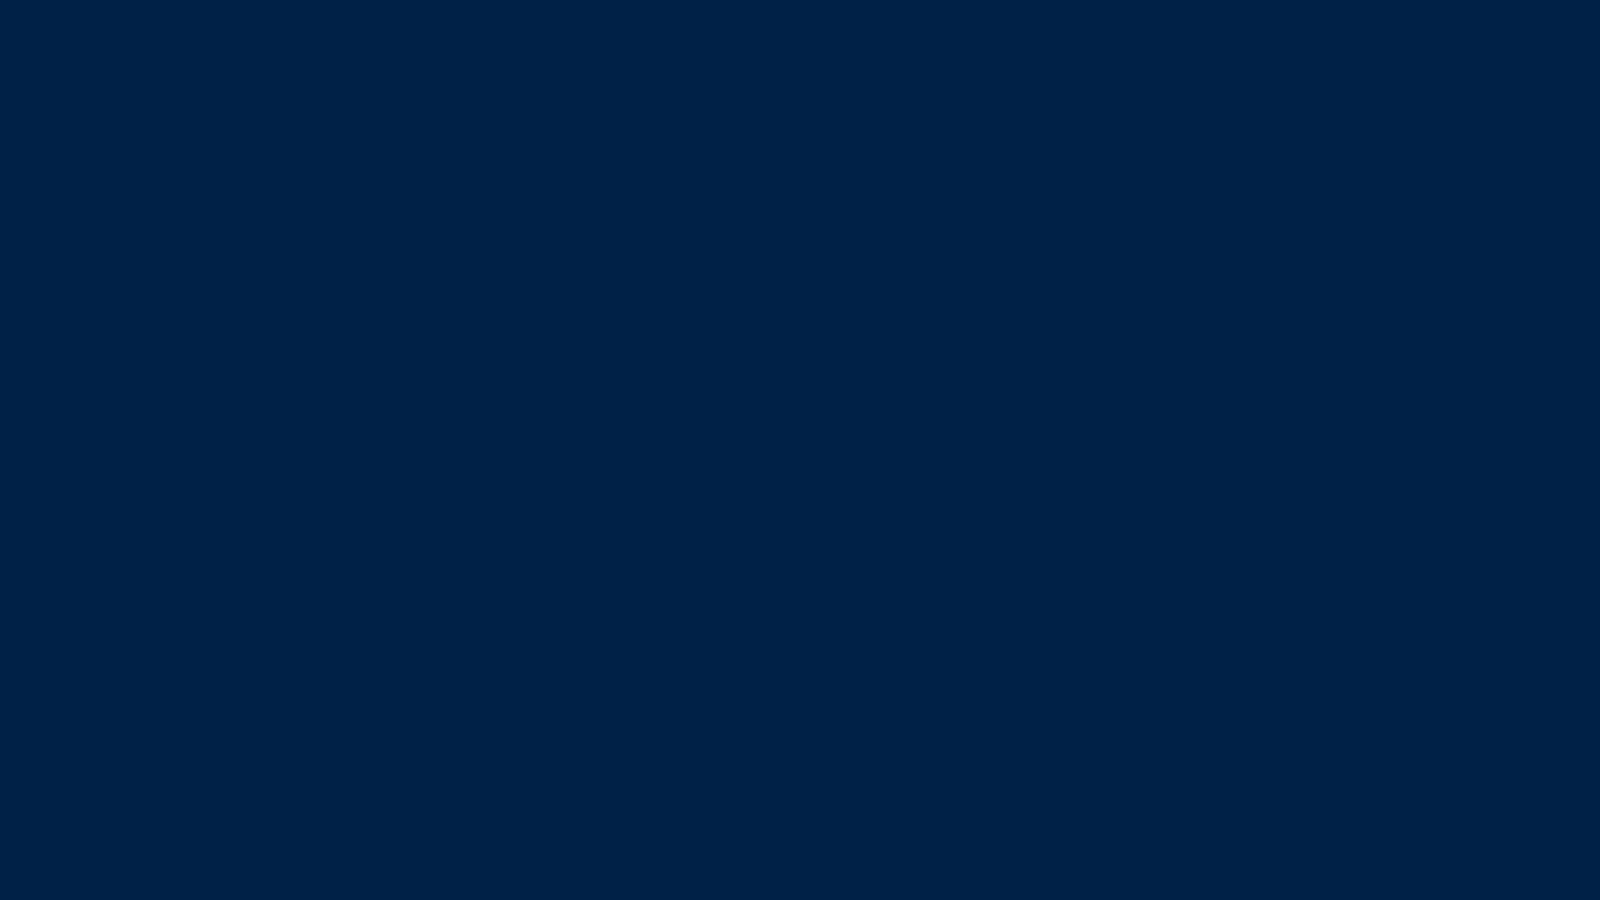 1600x900 Oxford Blue Solid Color Background